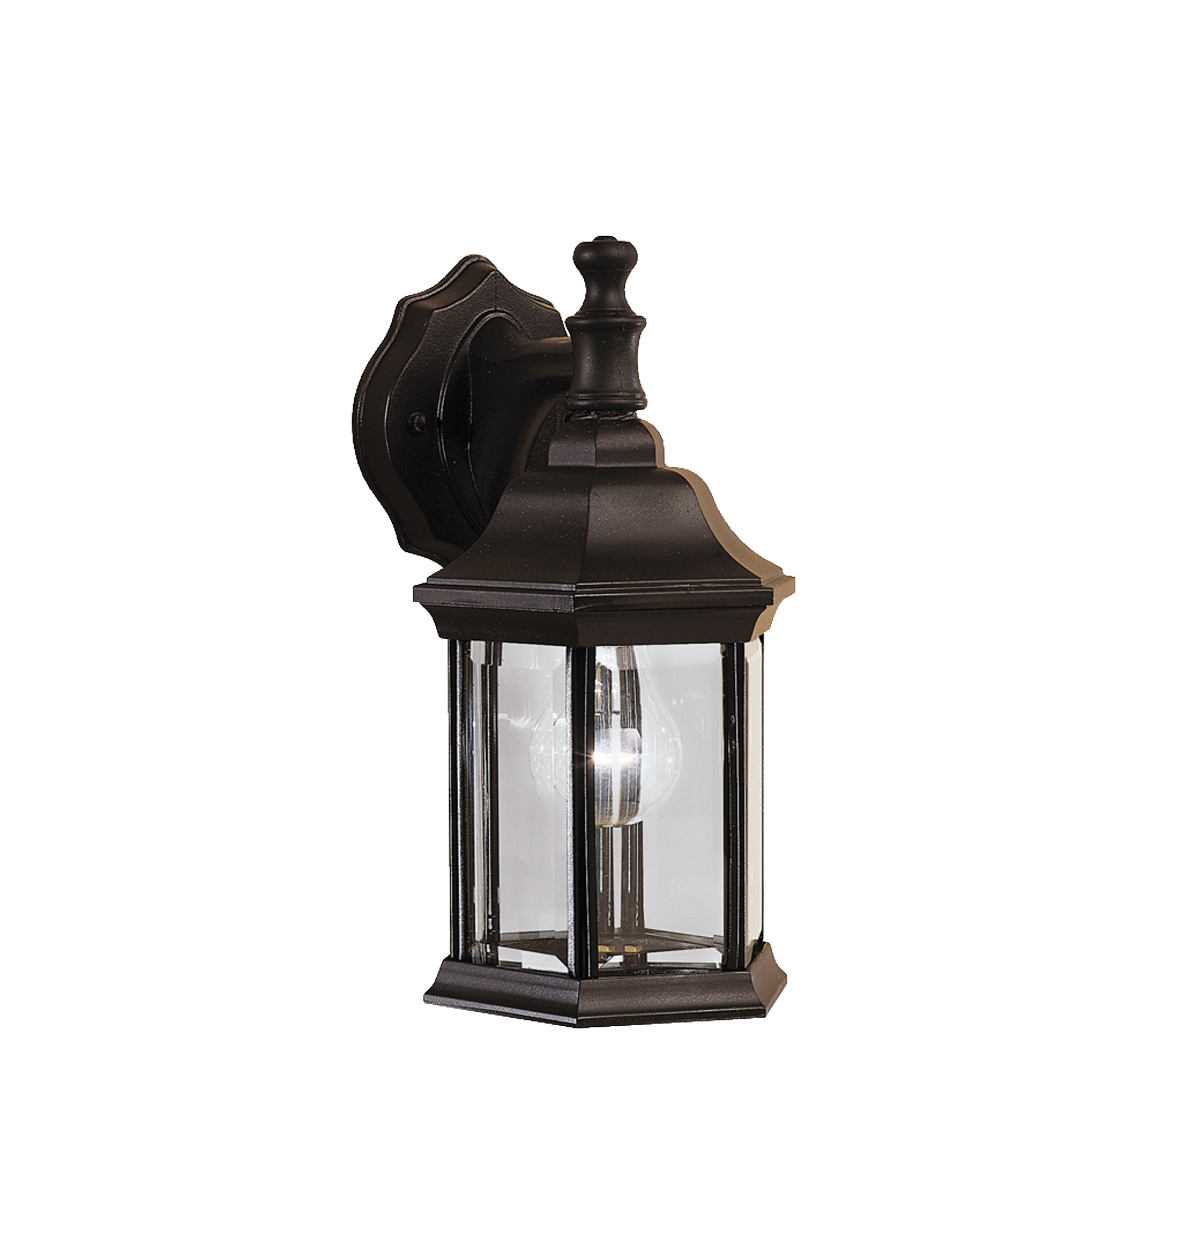 "Chesapeake 1 light Outdoor 12.5"" wall lamp in Black"